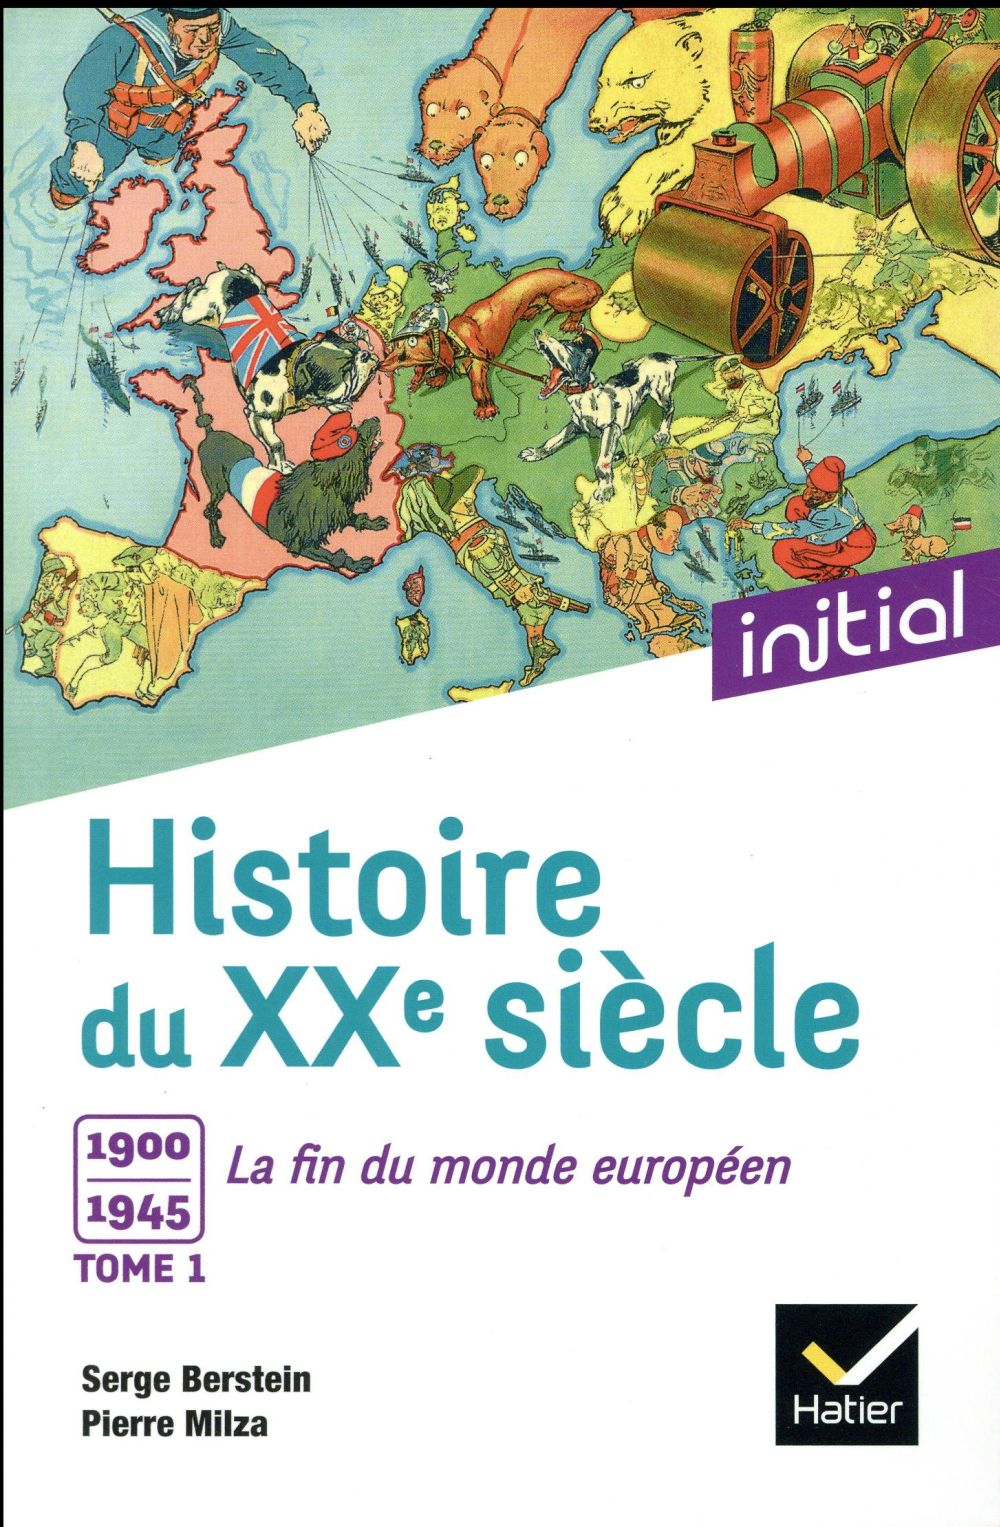 - INITIAL - HISTOIRE DU XXE SIECLE TOME 1